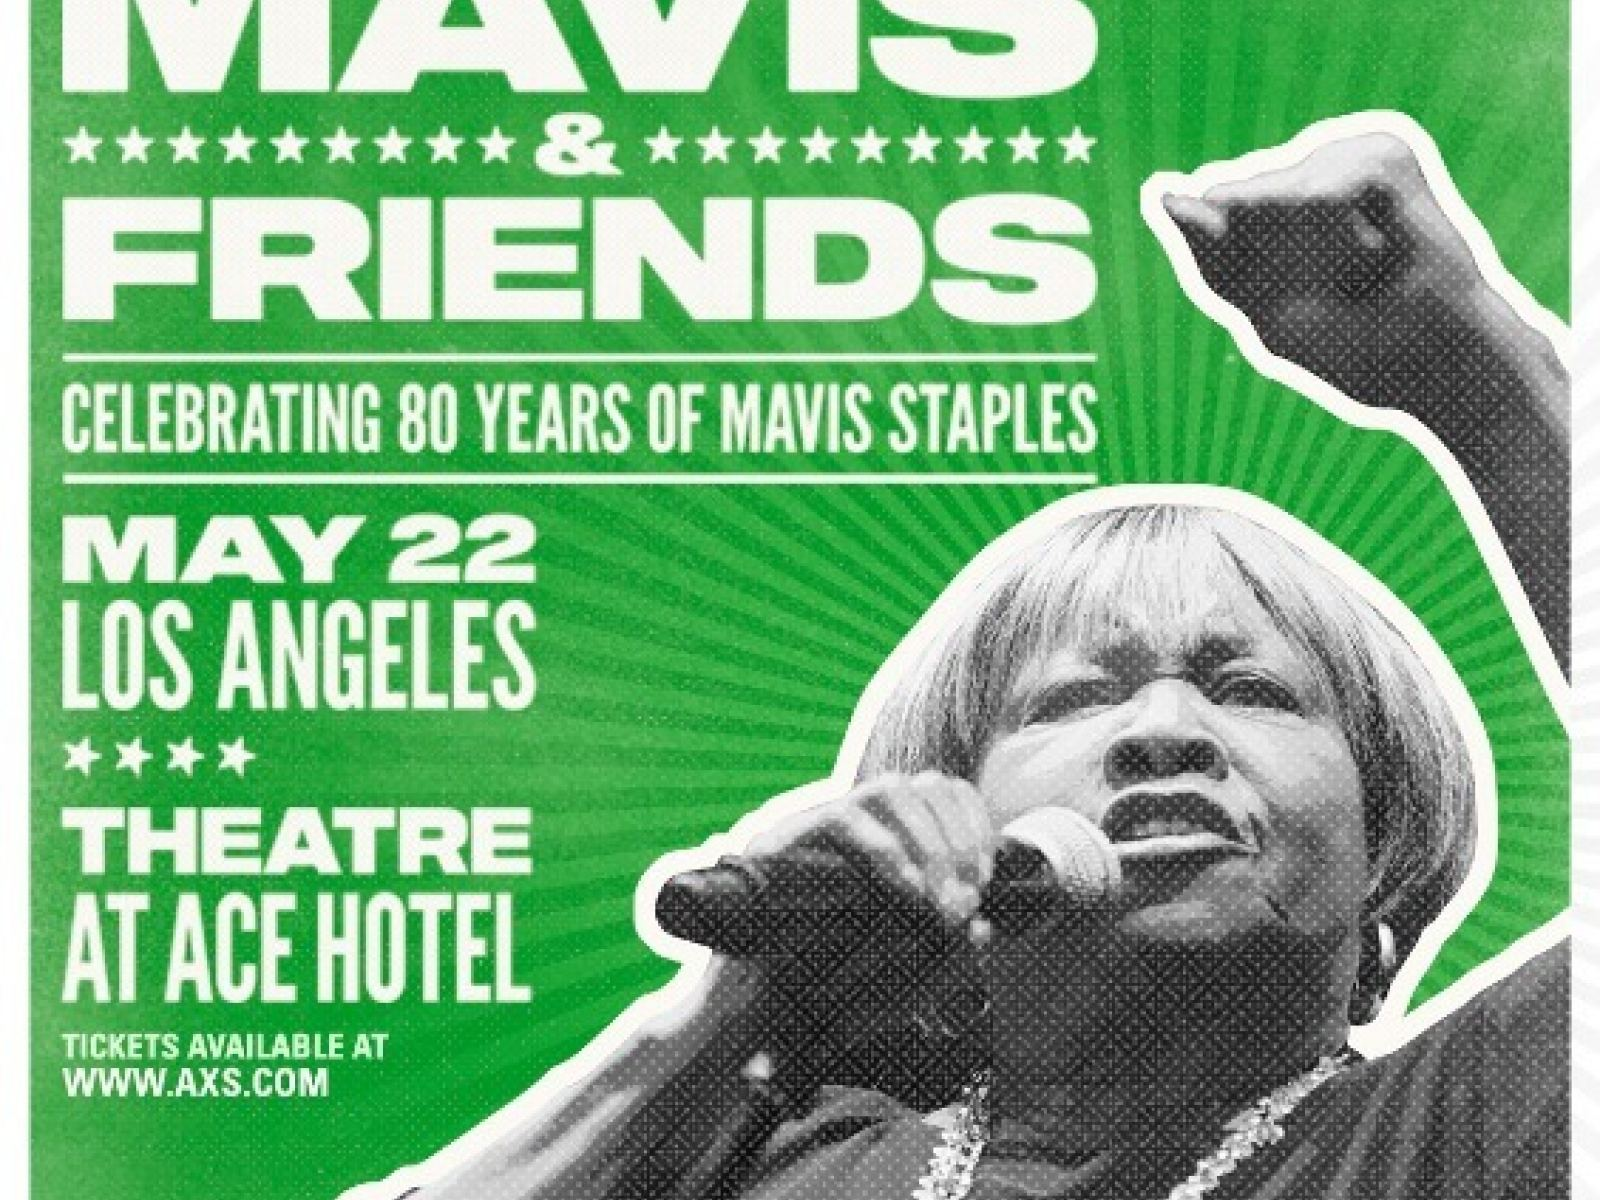 Main image for event titled MAVIS & FRIENDS: Celebrating 80 Years of Mavis Staples